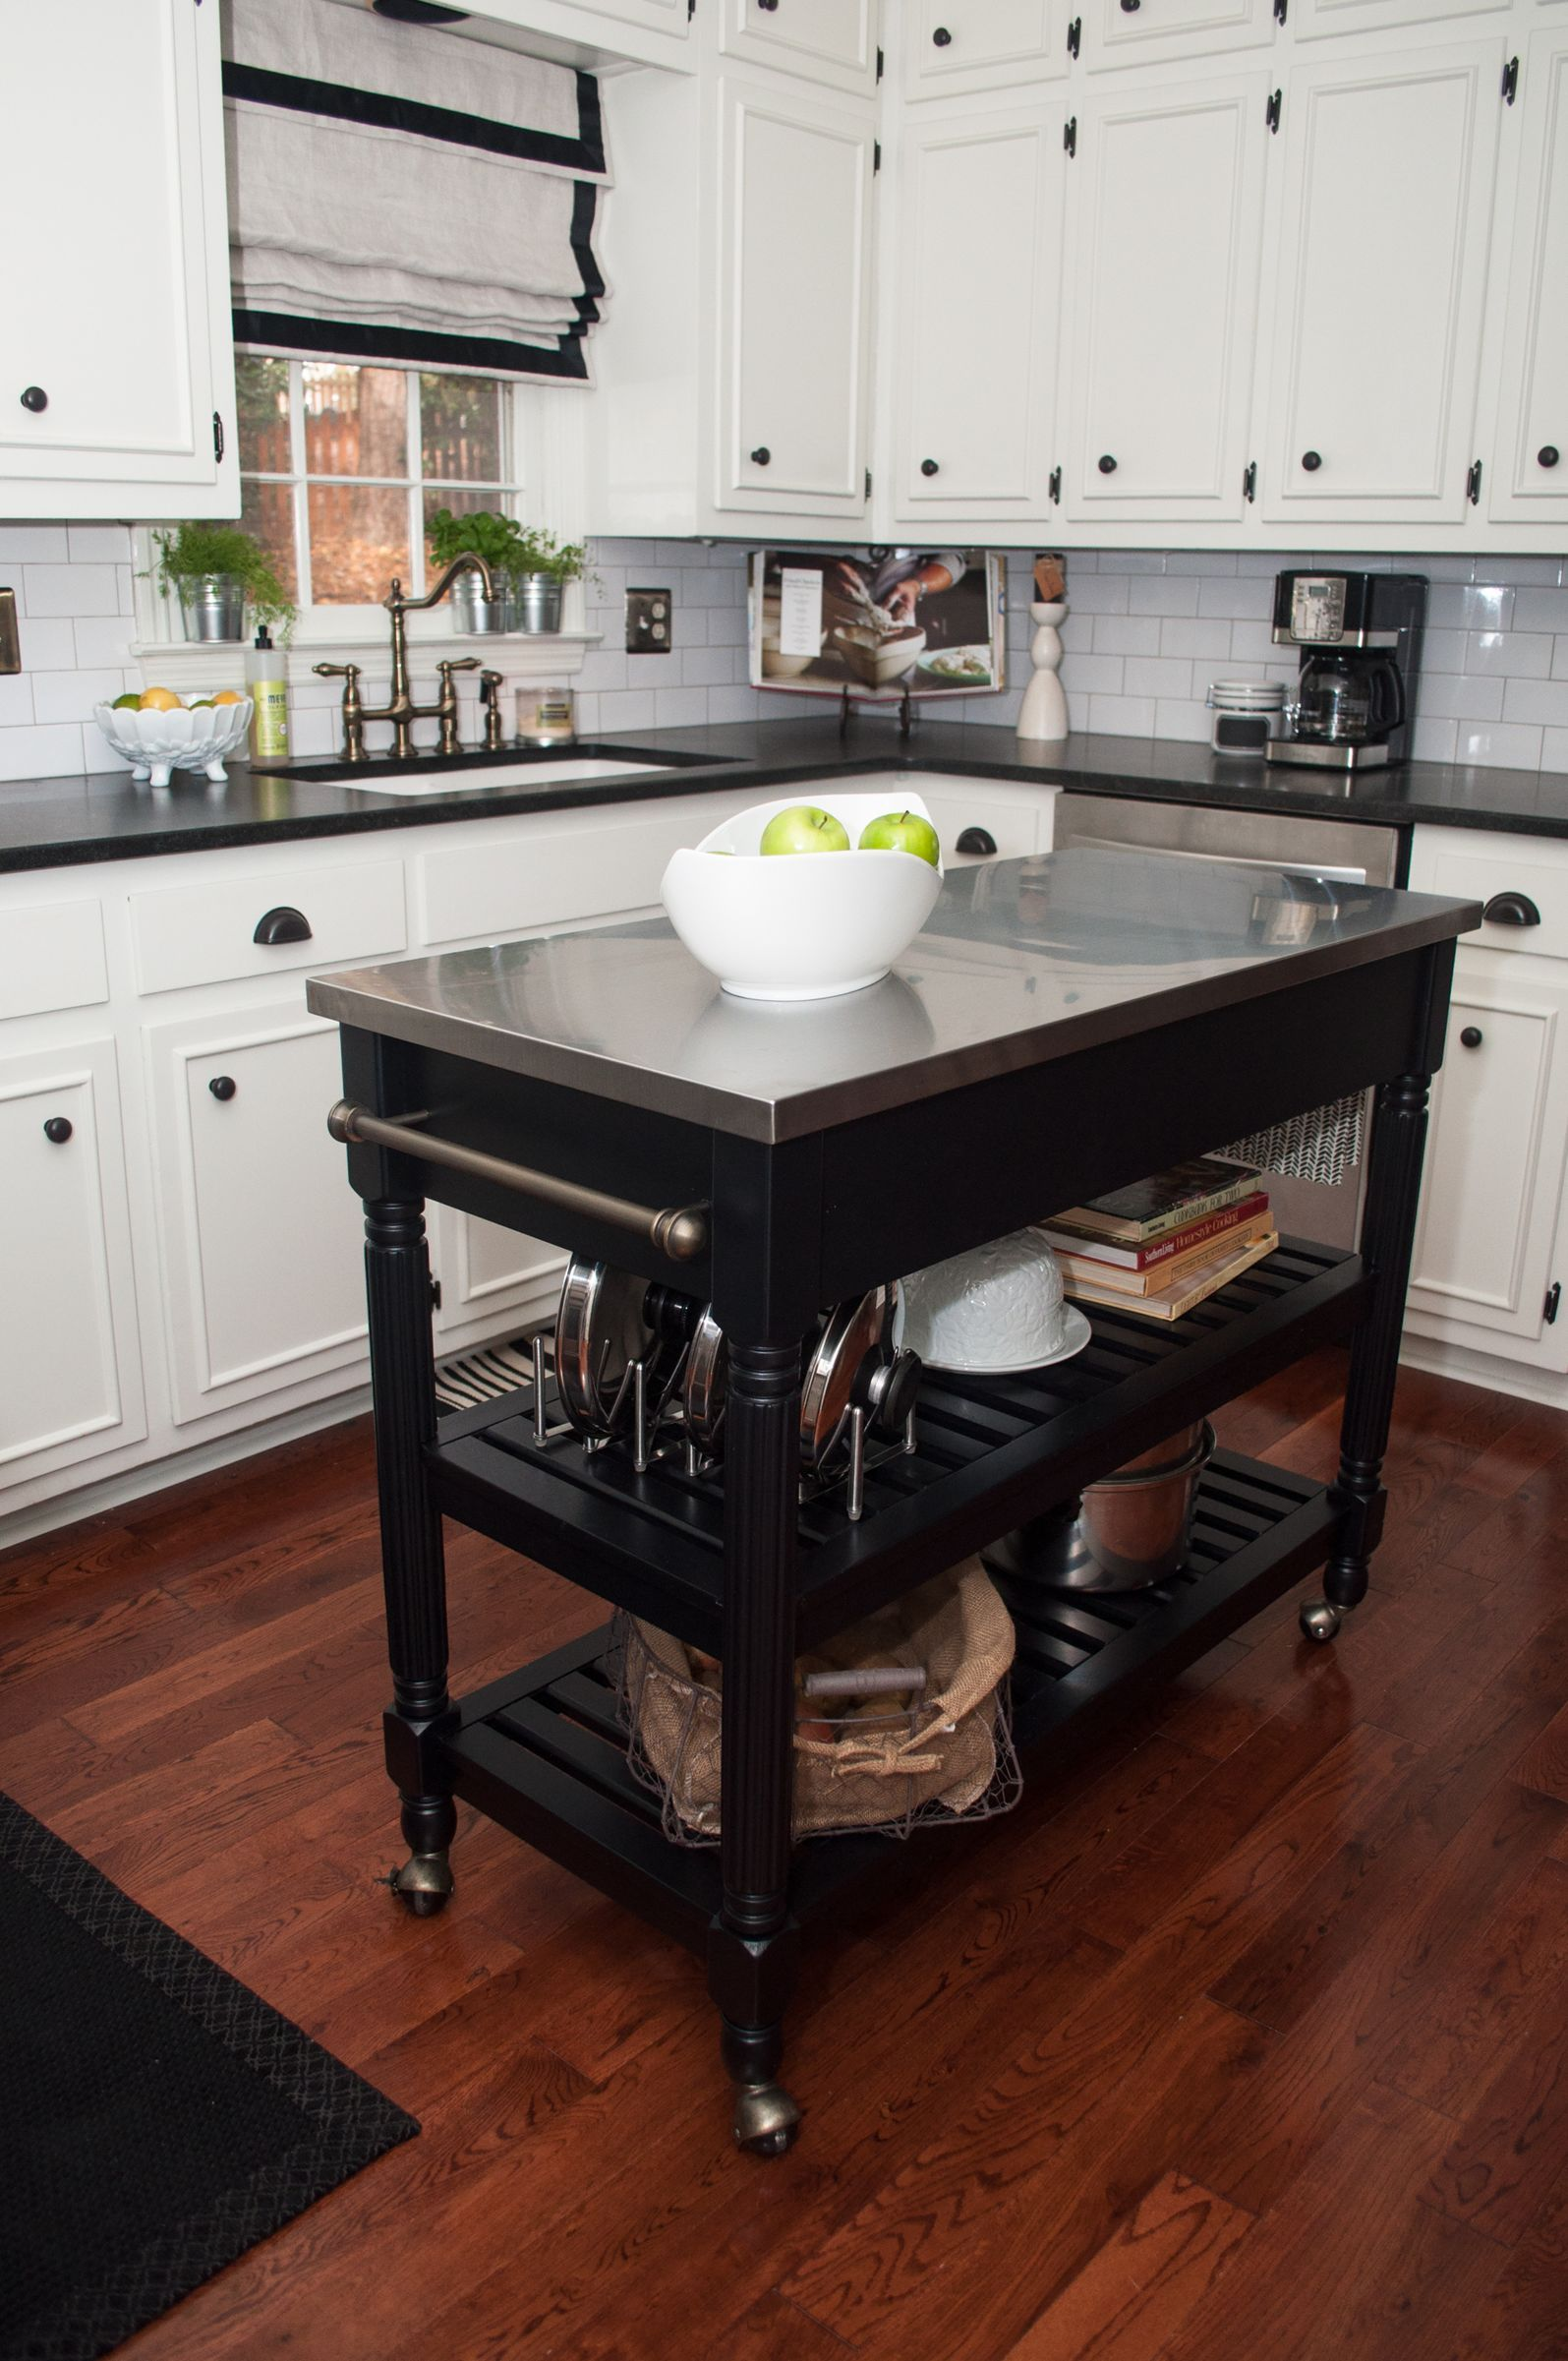 60 Types Of Small Kitchen Islands Amp Carts On Wheels Gift Ideas Portable Kitchen Island